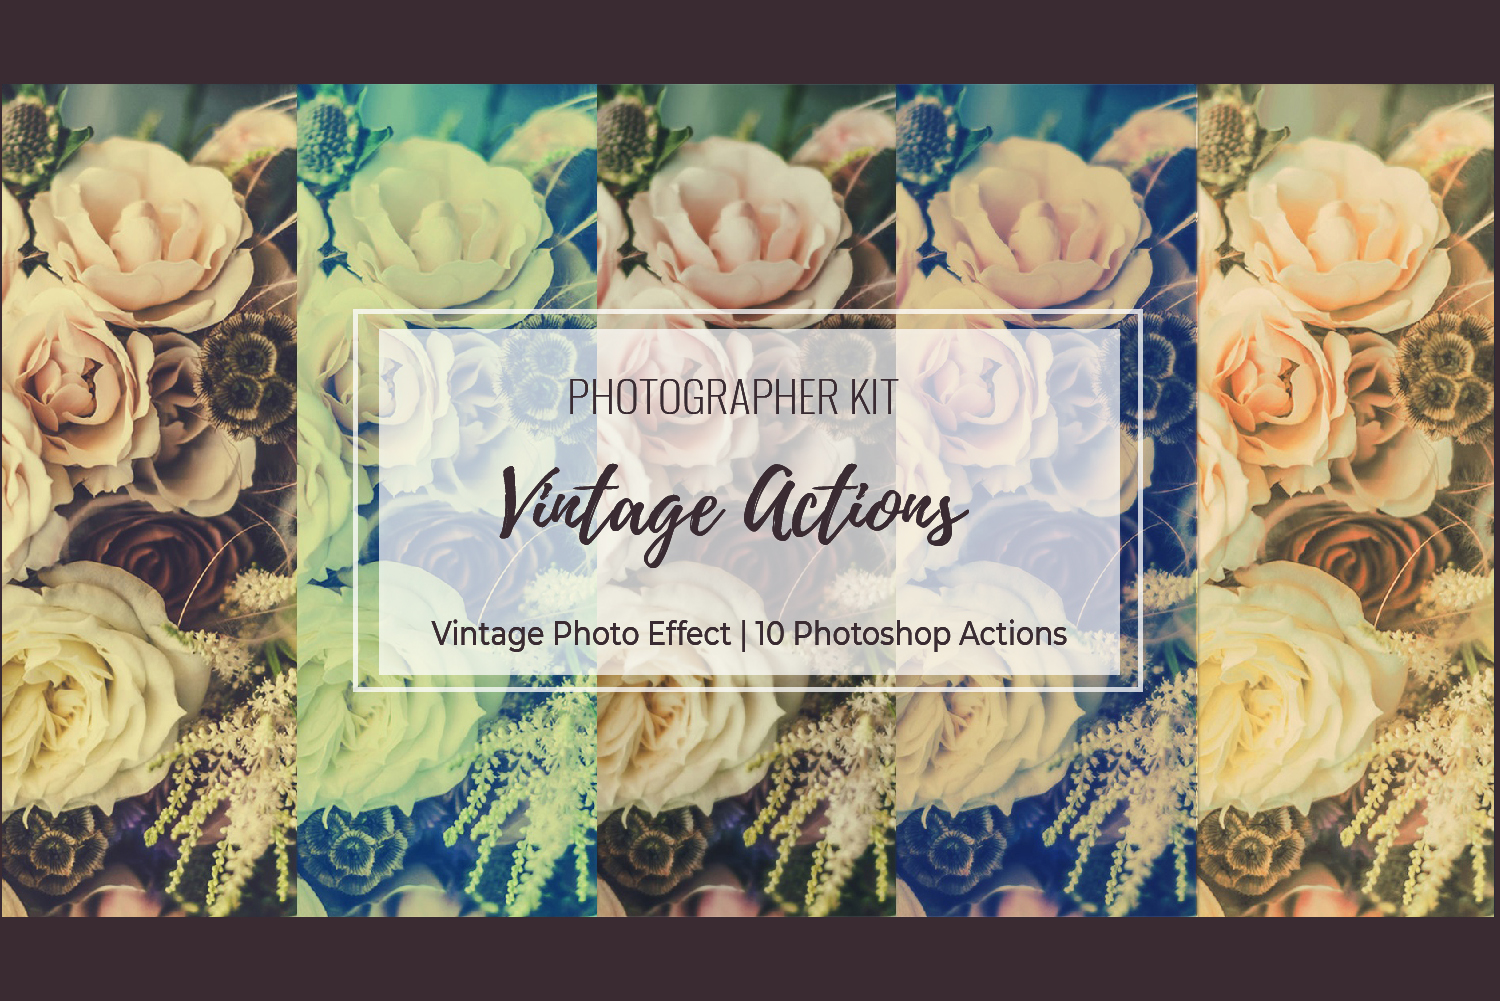 Vintage Photo Effect - 10 PS Actions Kit example image 23